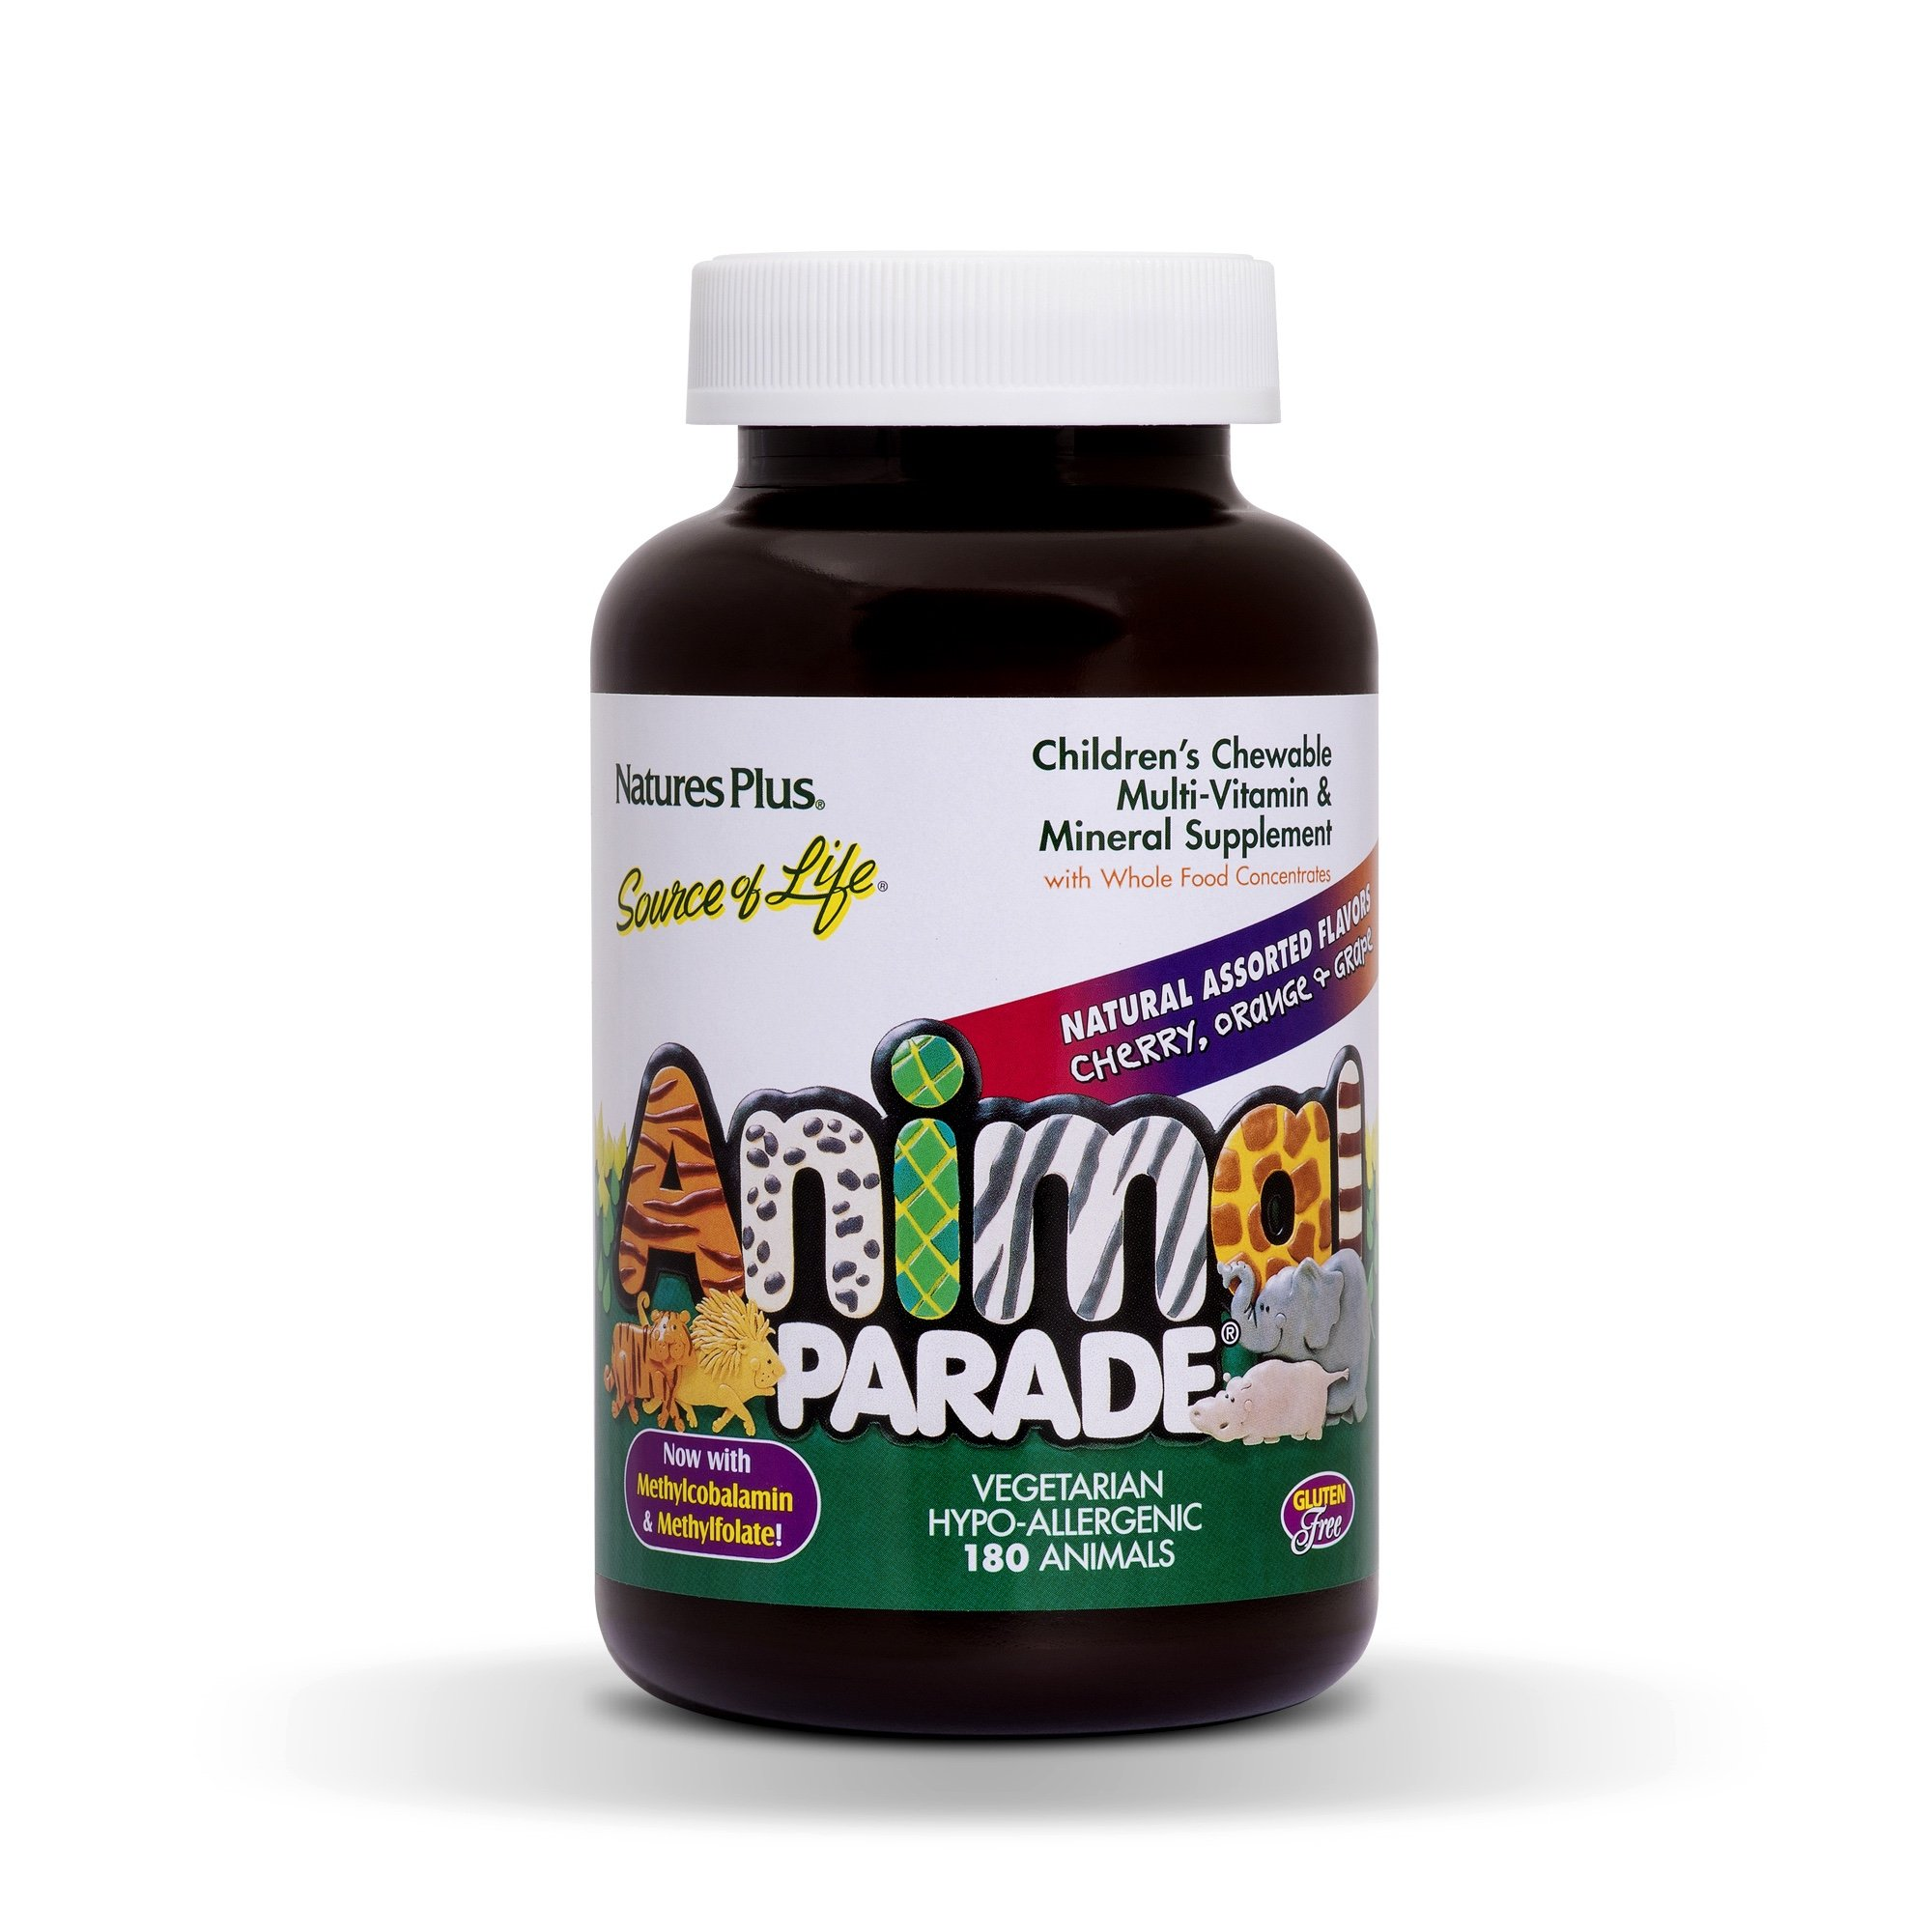 NaturesPlus Animal Parade Source of Life Children's Chewable Multivitamin - 180 Animal Shaped Tablets - Natural Assorted Flavors - Vegetarian, Gluten-Free - 90 Total Servings